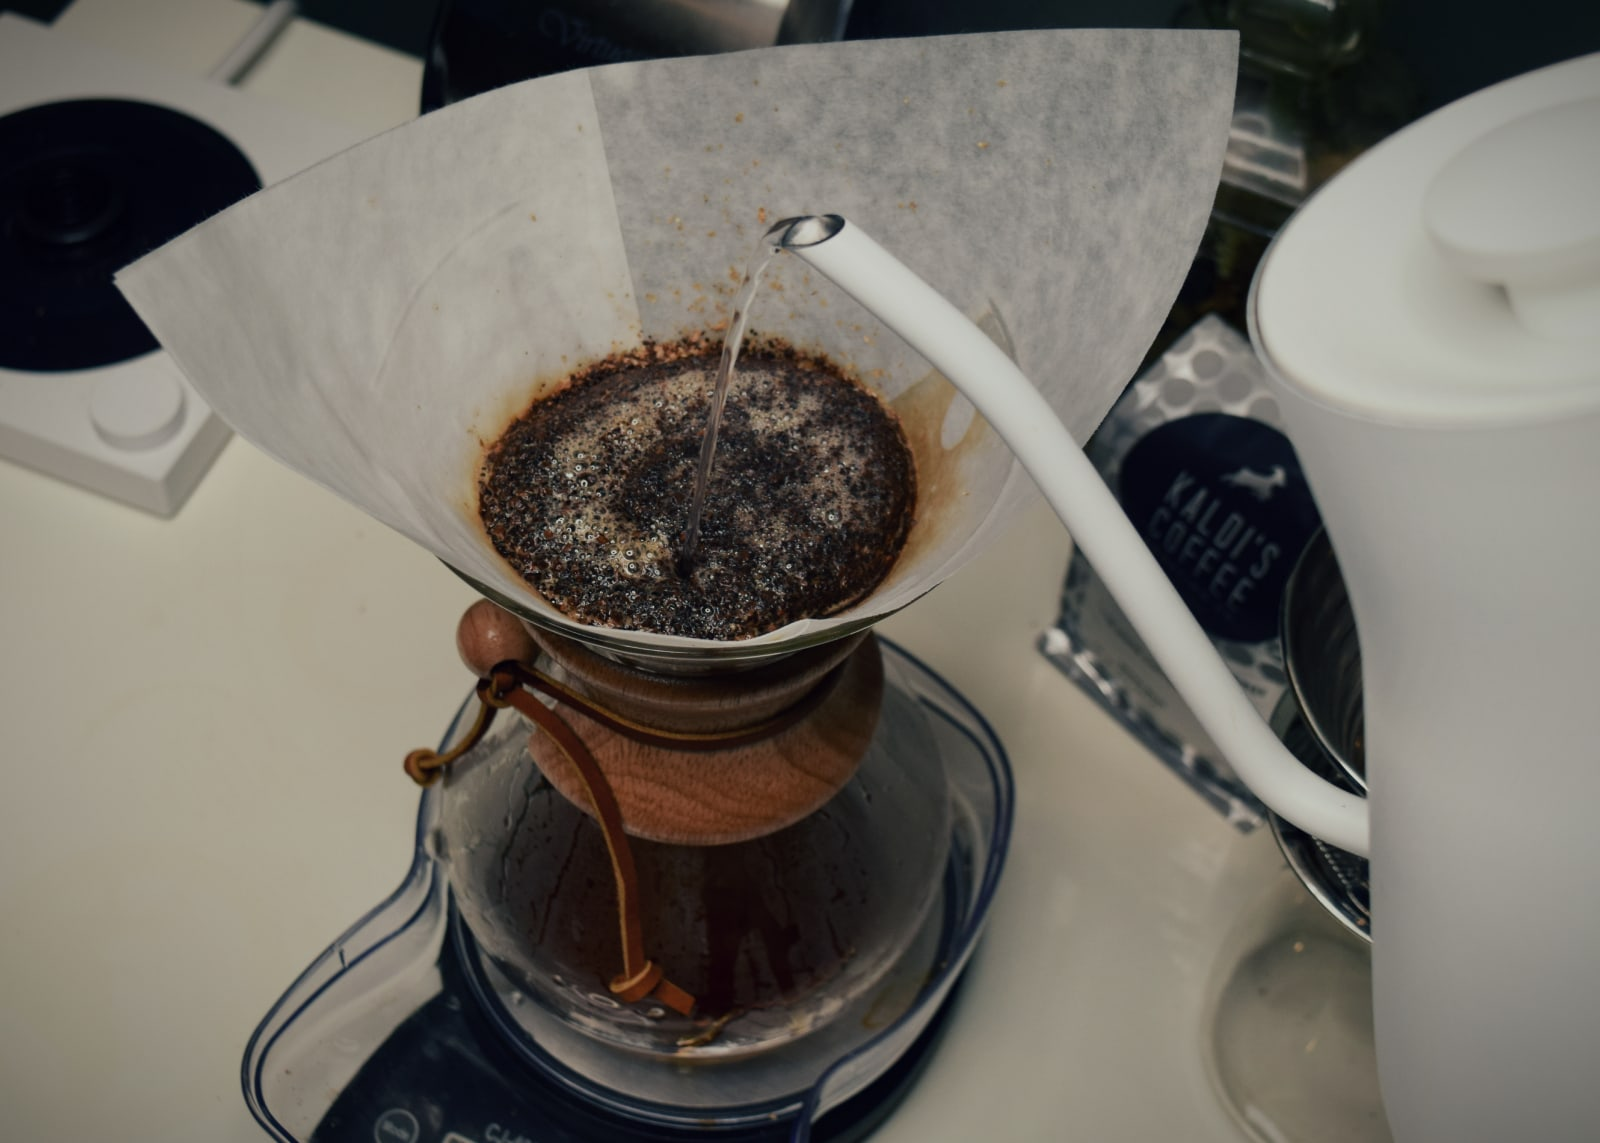 Pouring over a Chemex coffee bed